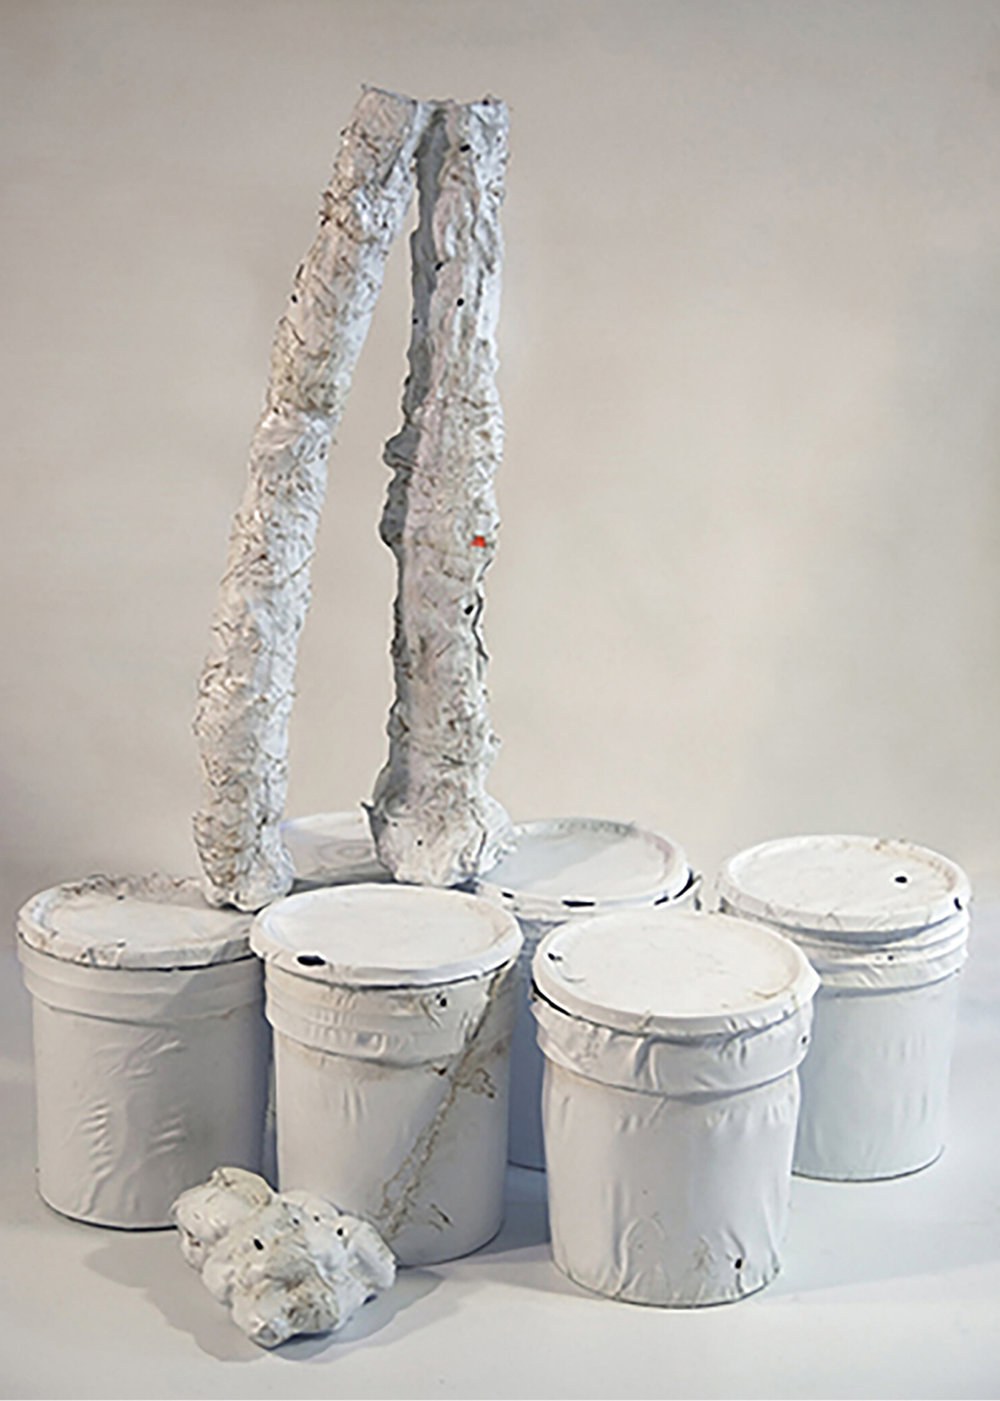 Copy Of Bronze Sculpture C. 1986, Plastic Buckets, 5lb Of Potatoes